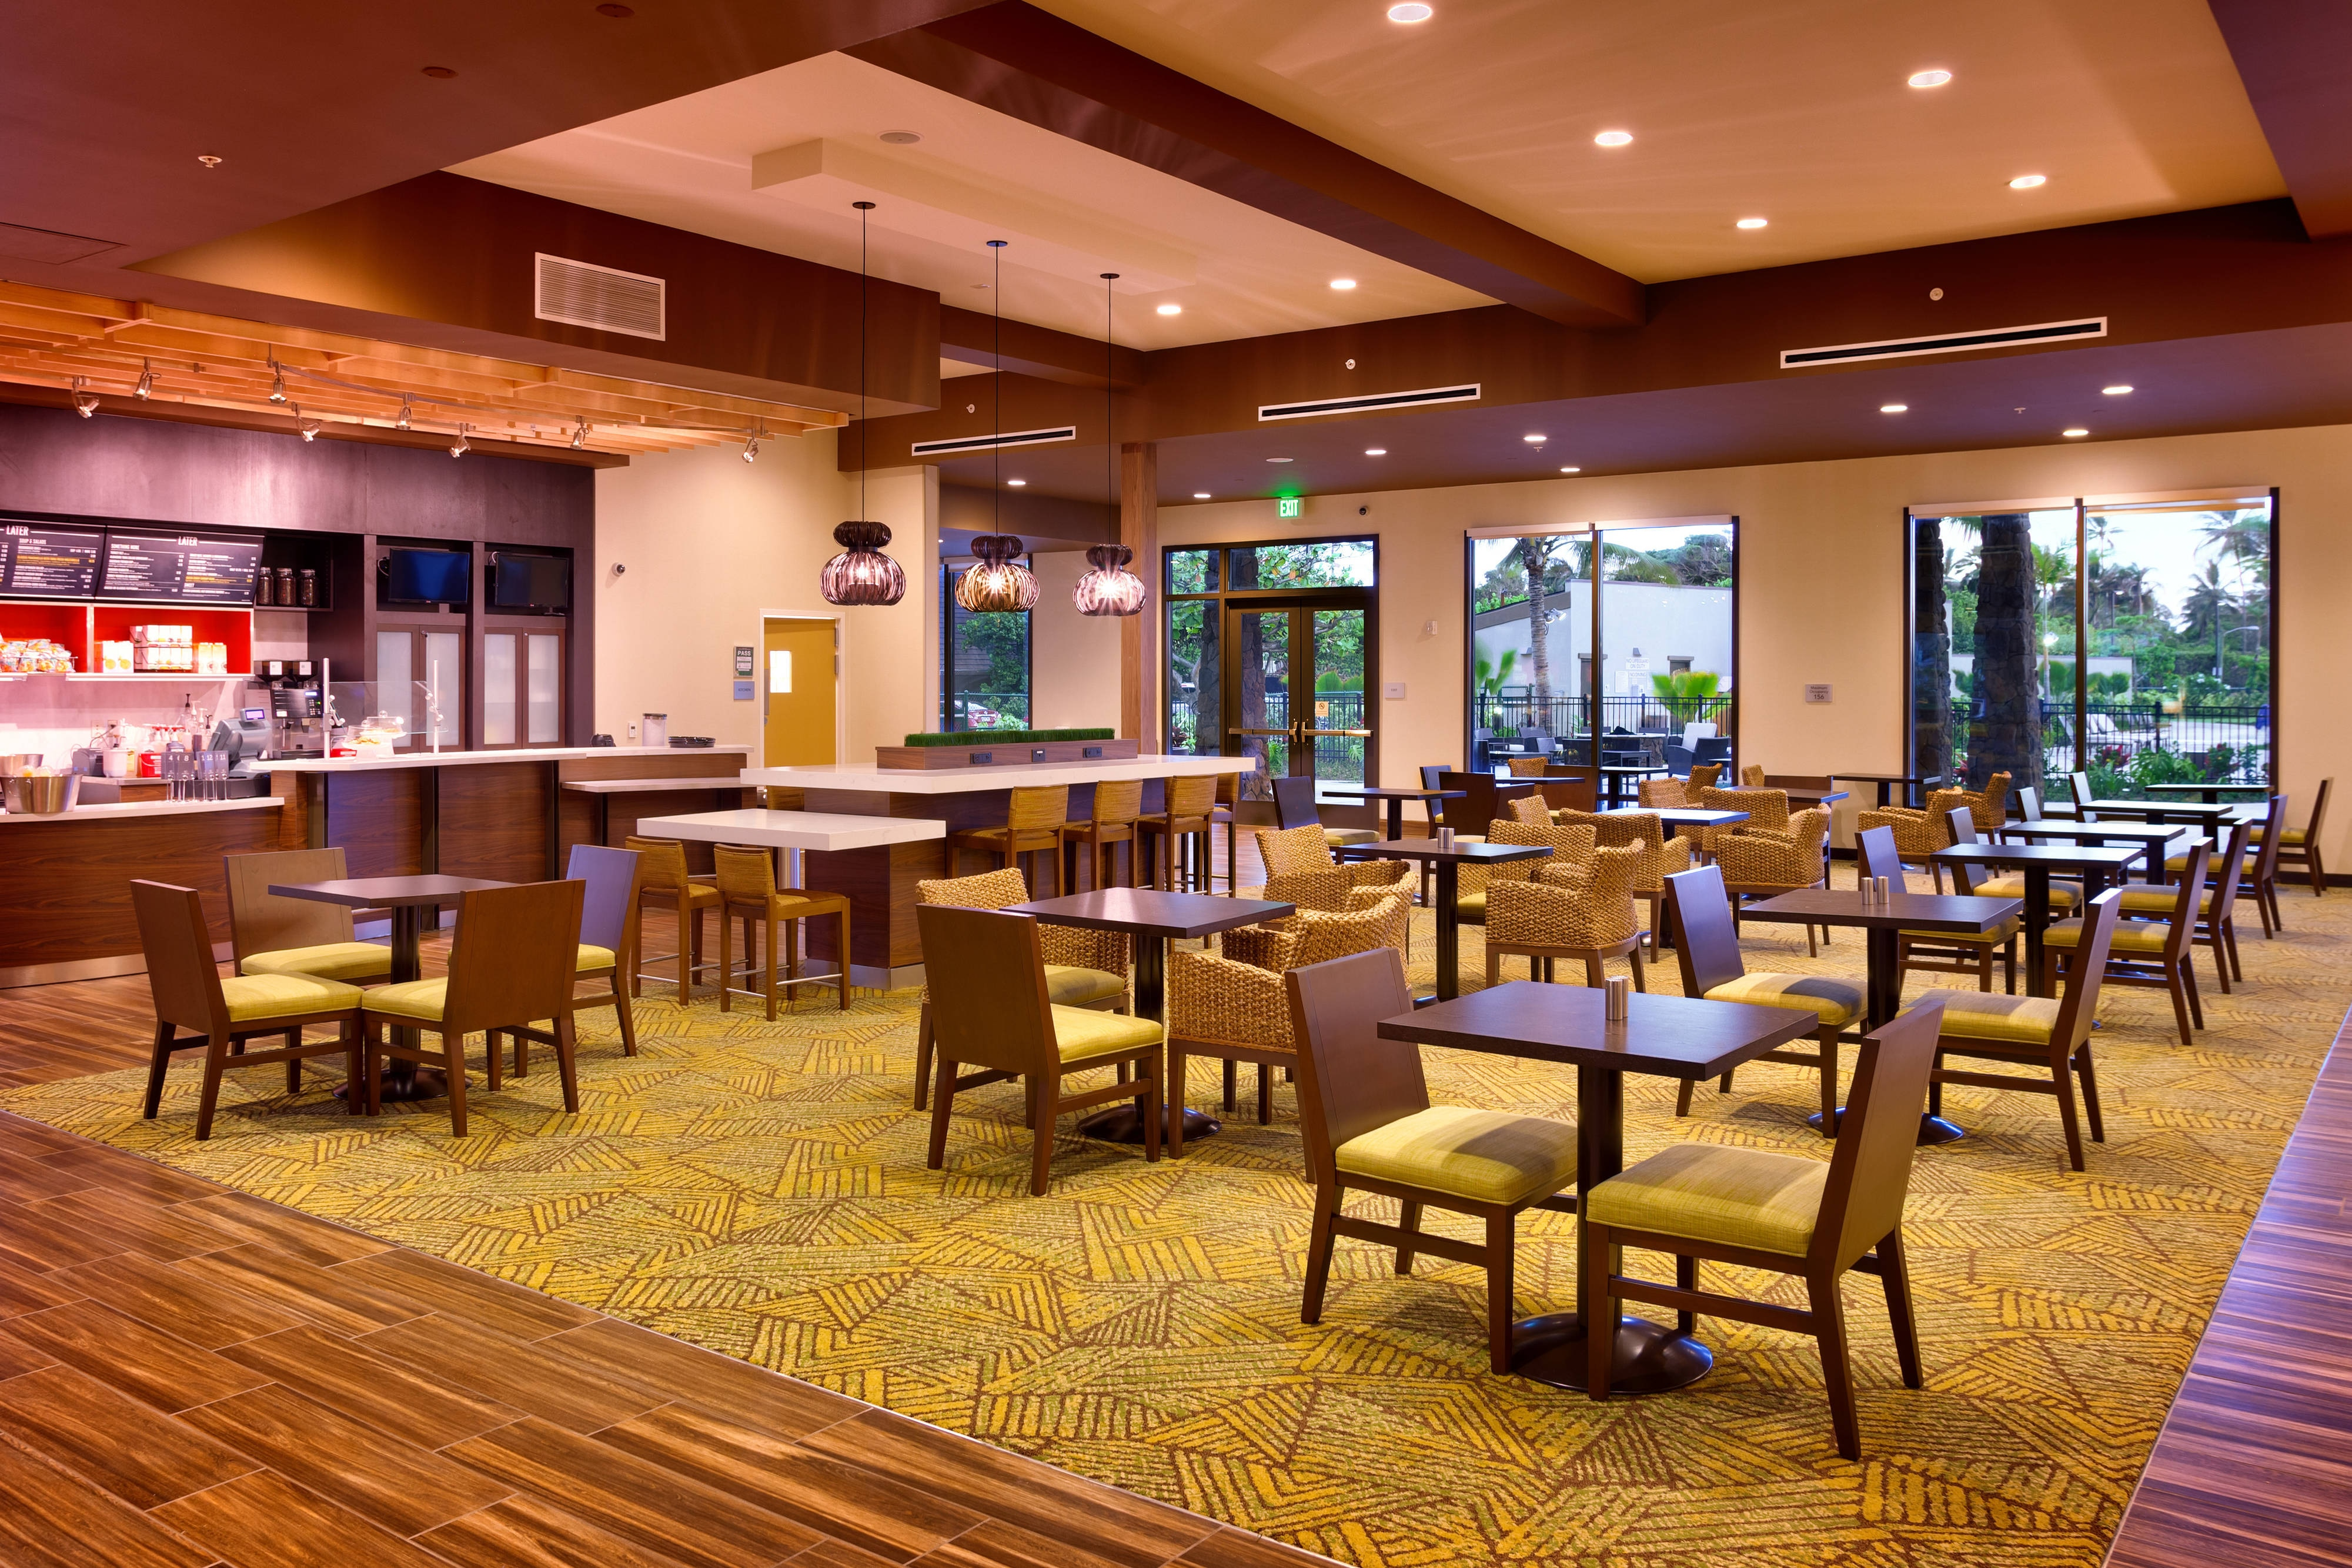 Oahu American restaurant seating area